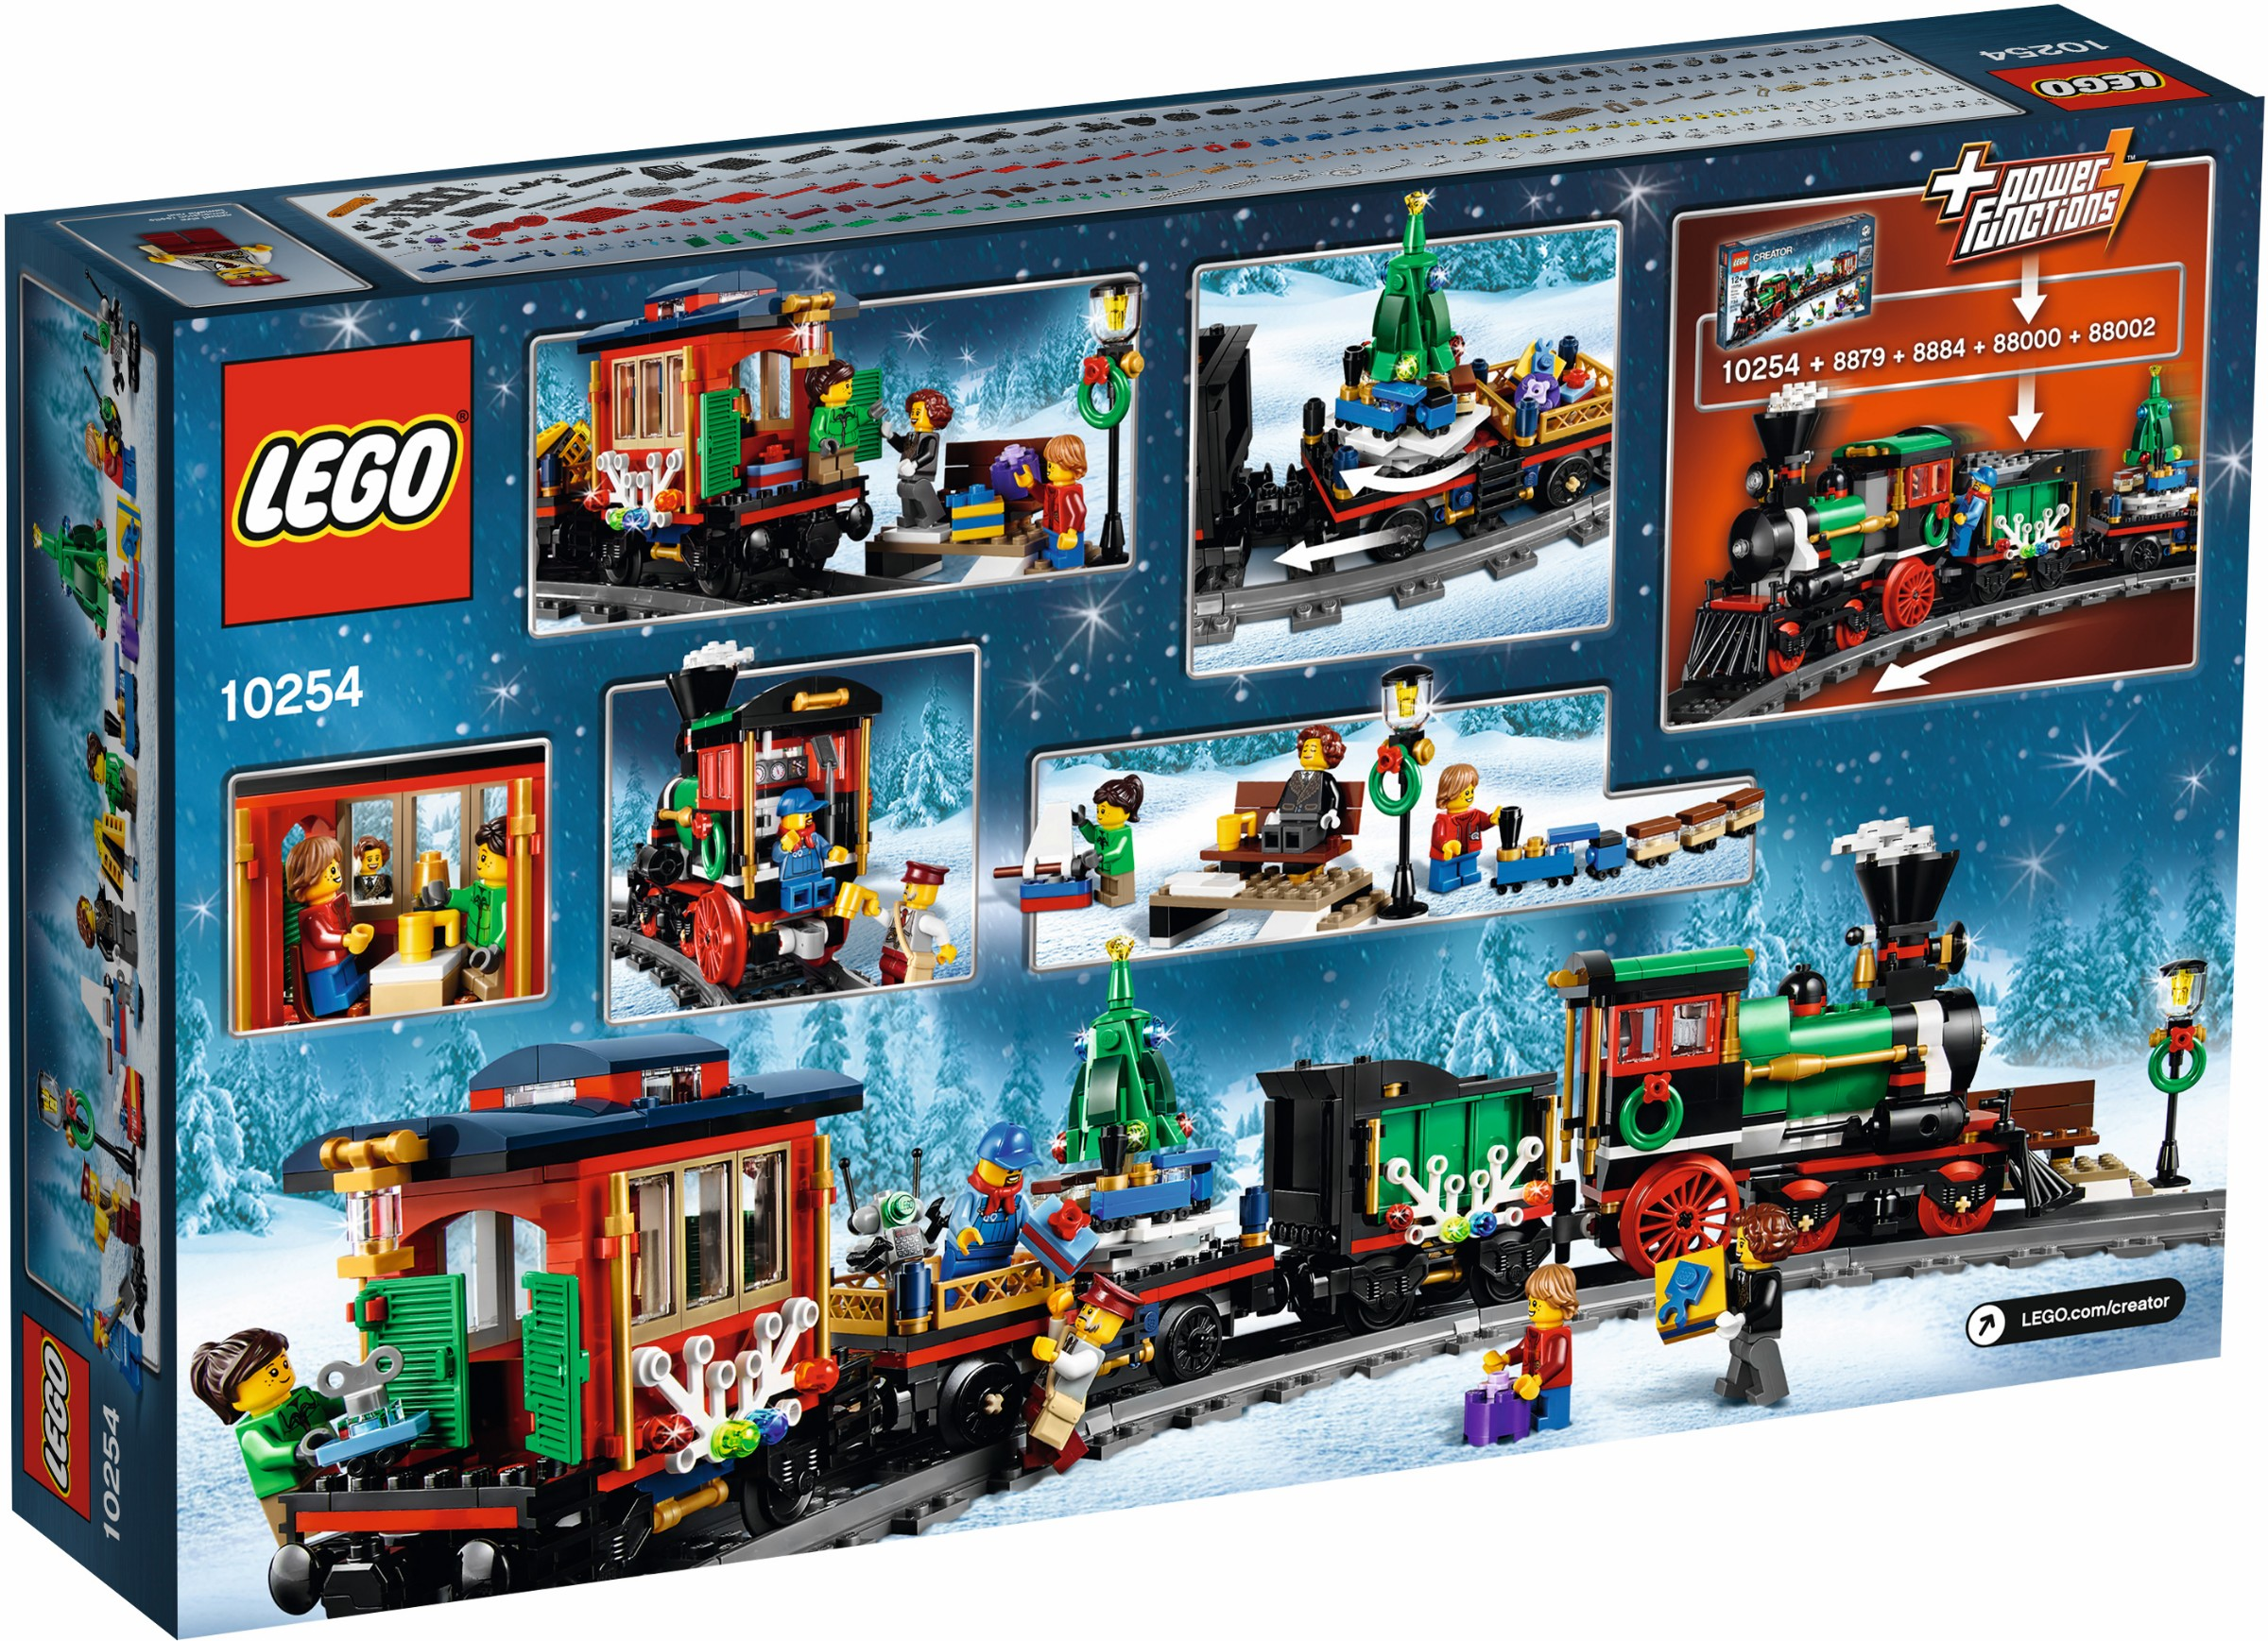 LEGO Reveals Its Latest Christmas Train Set, The Winter Holiday ...